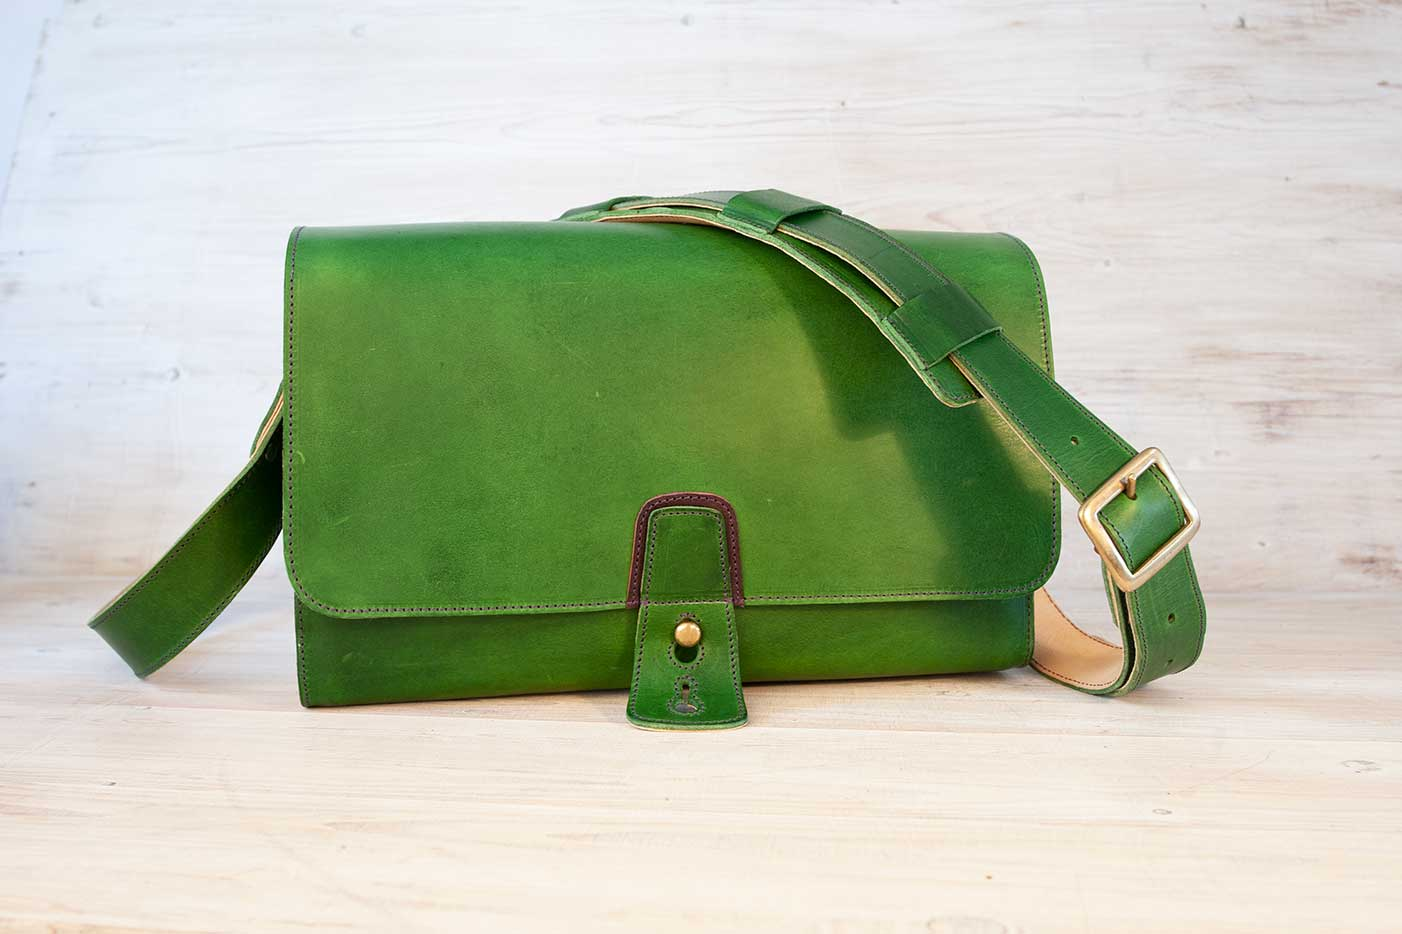 Post Satchel Bag green with d brown detail & tan